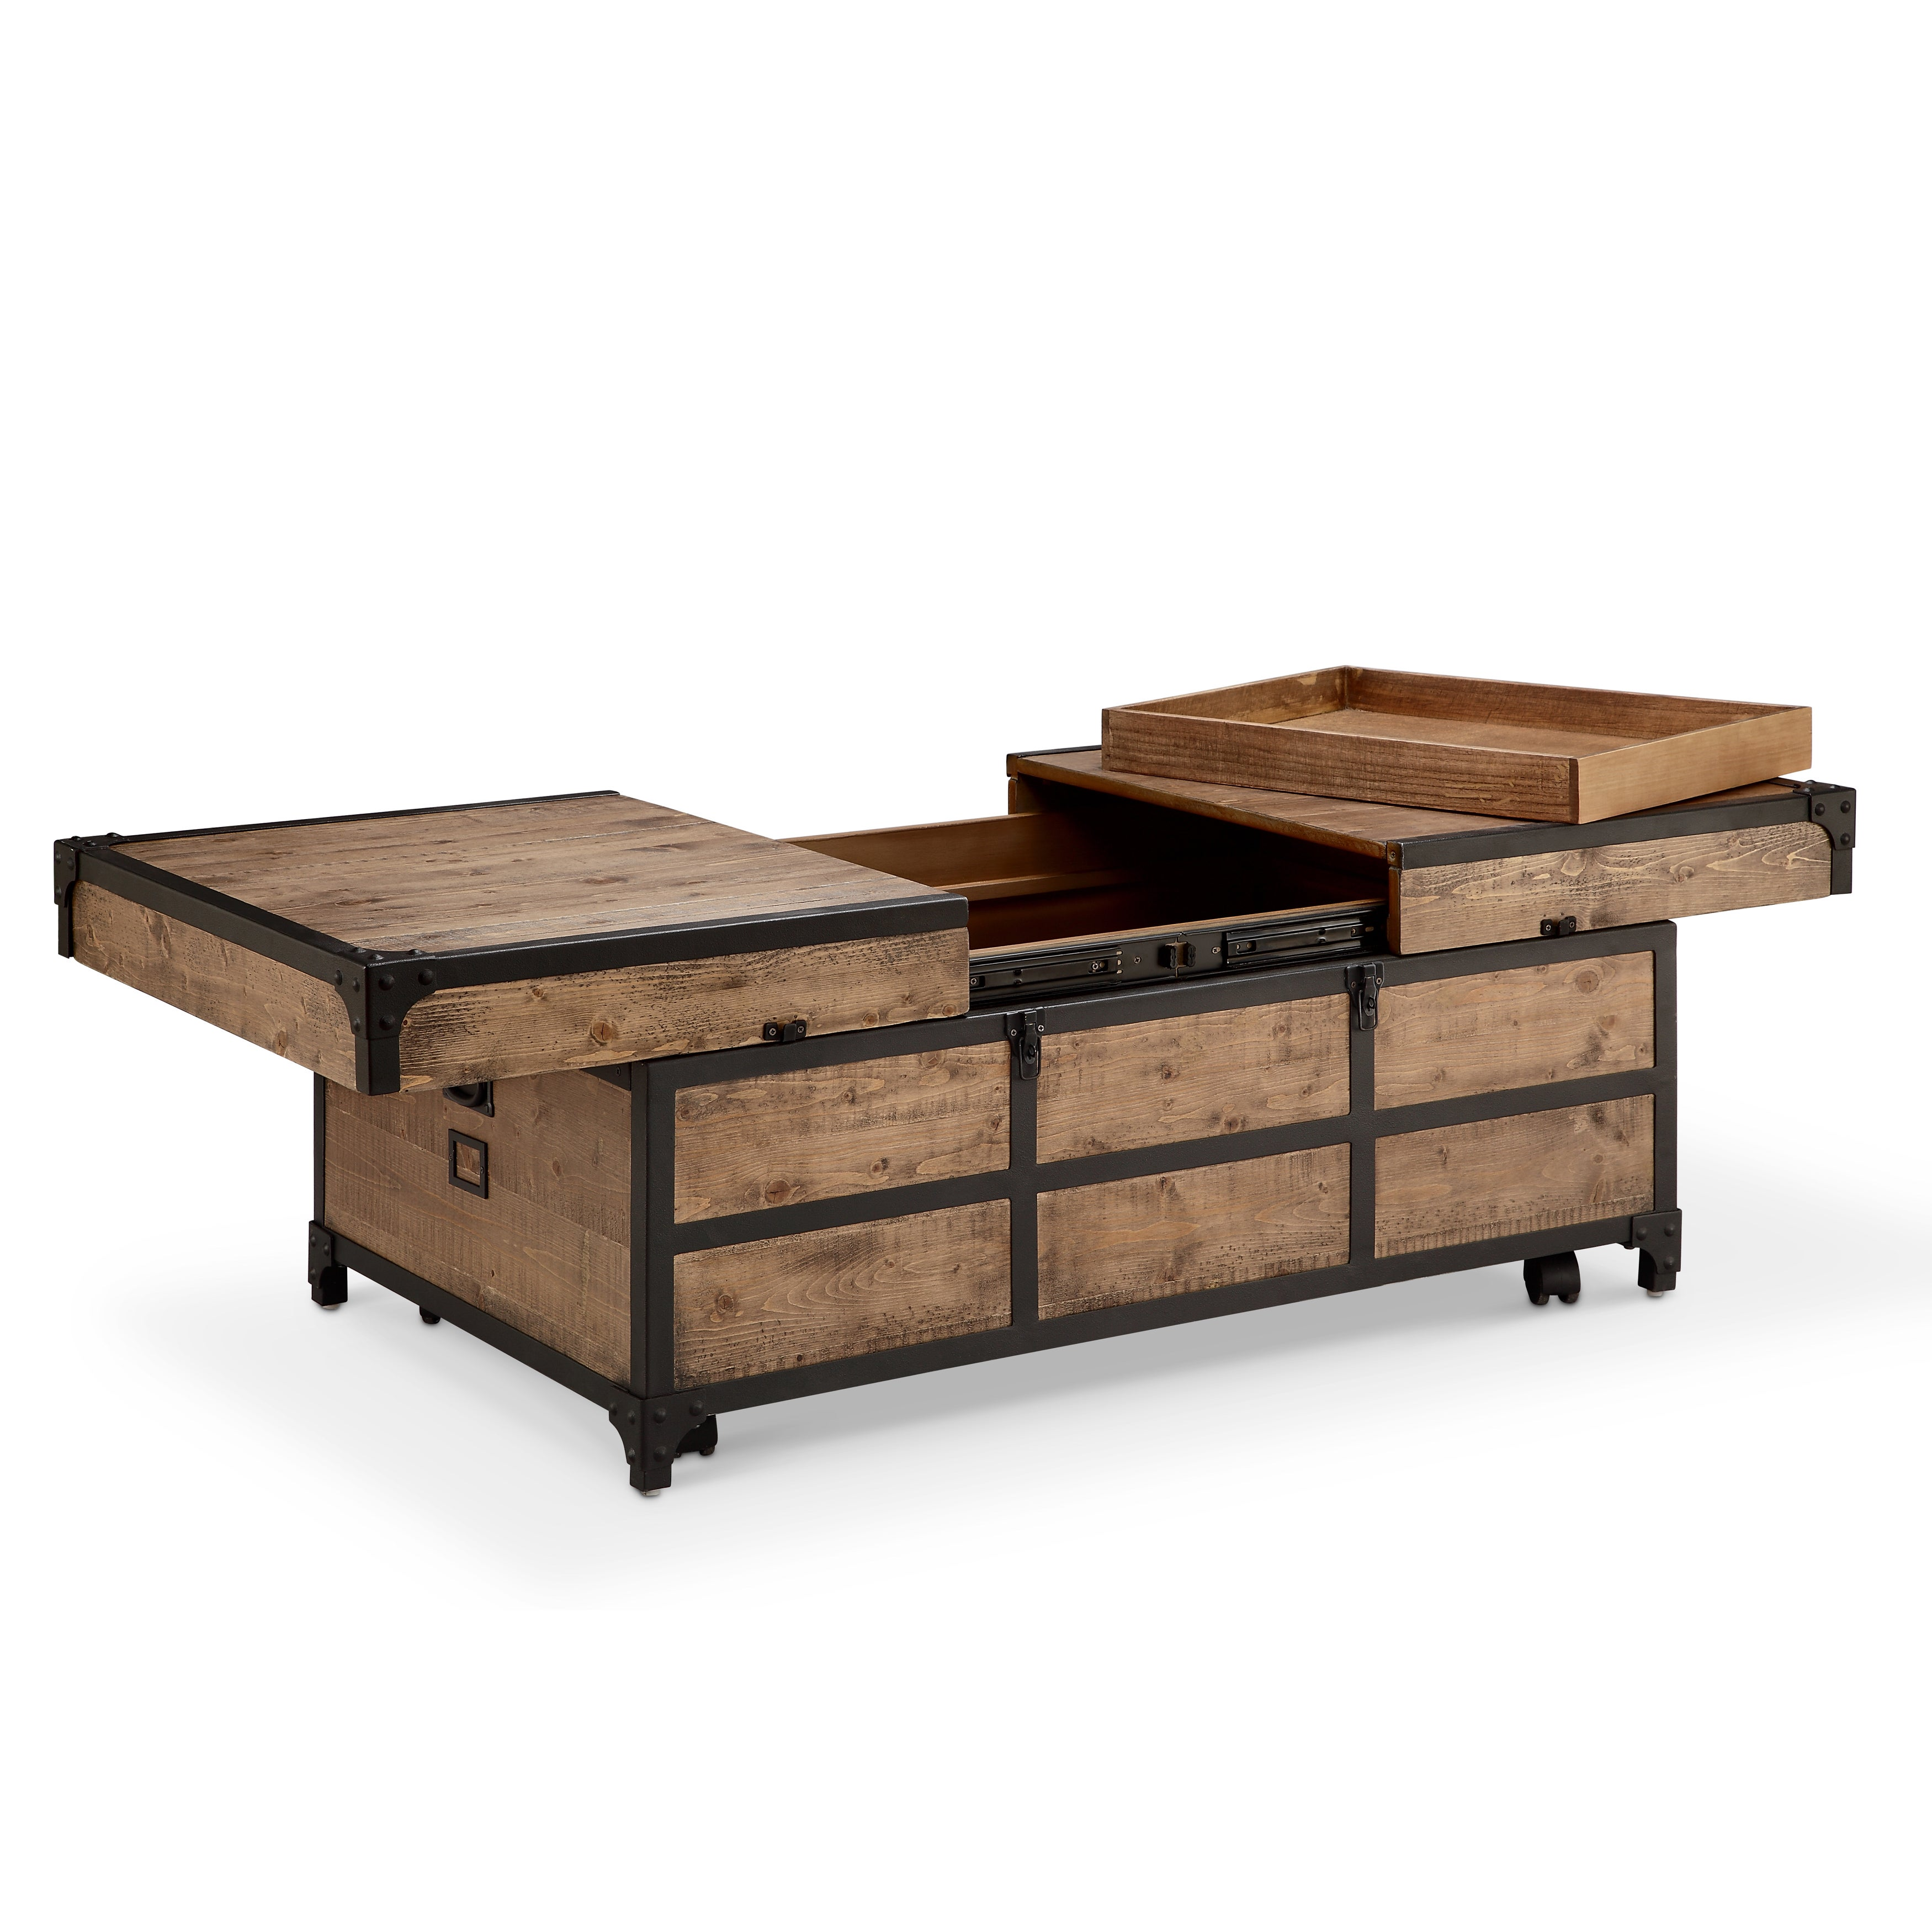 Maguire Rustic Weathered Barley Expandable Storage Coffee Table With Casters